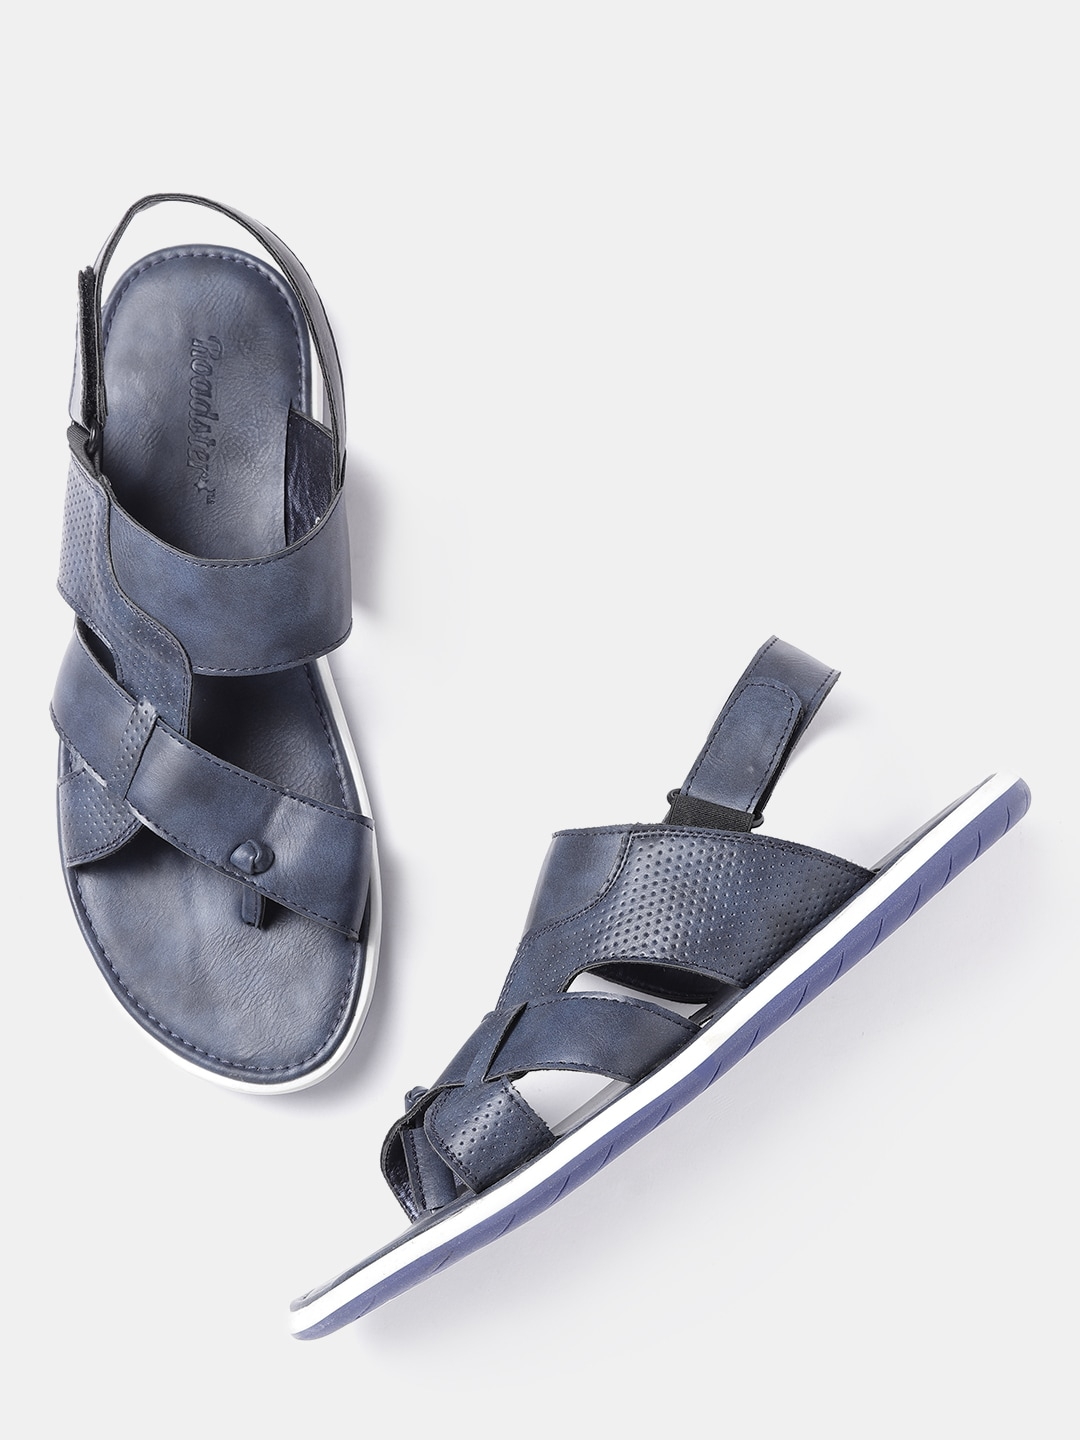 7e879a4b3481 Roadster Sandals - Buy Roadster Sandals online in India